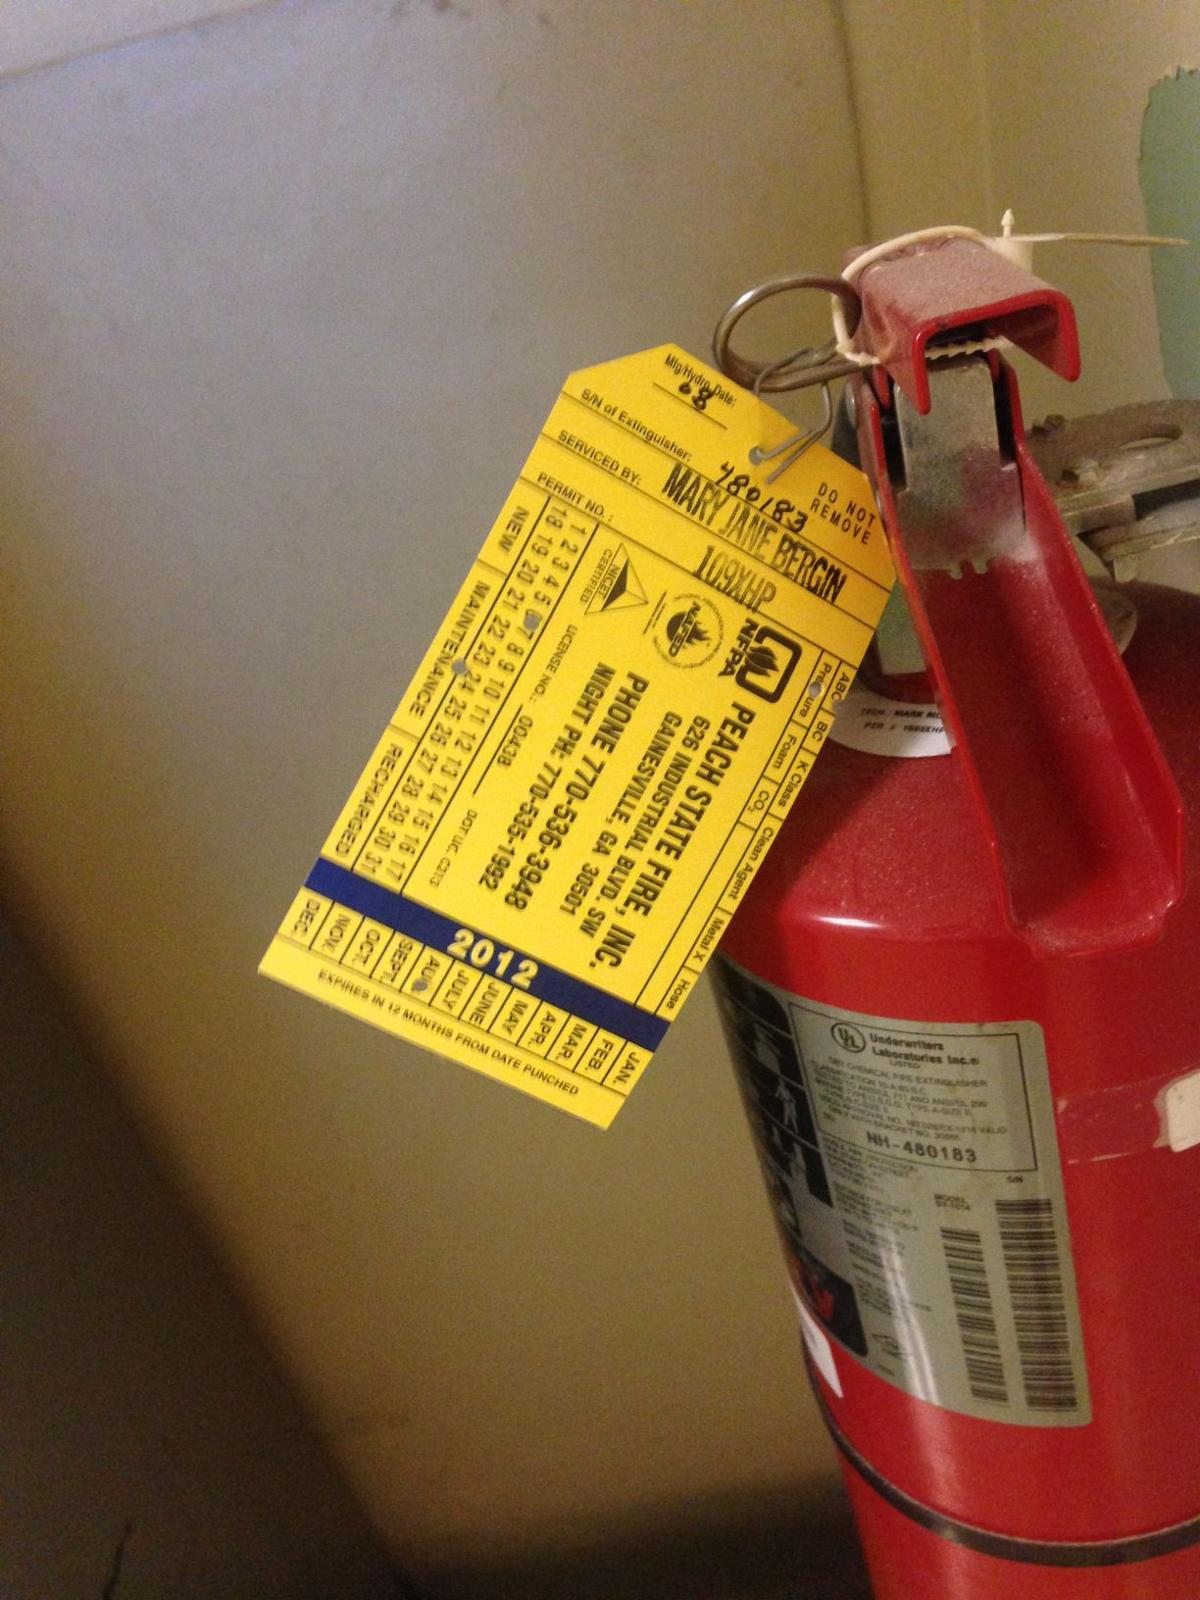 Out of date: Fire extinguishers expired | UGAnews